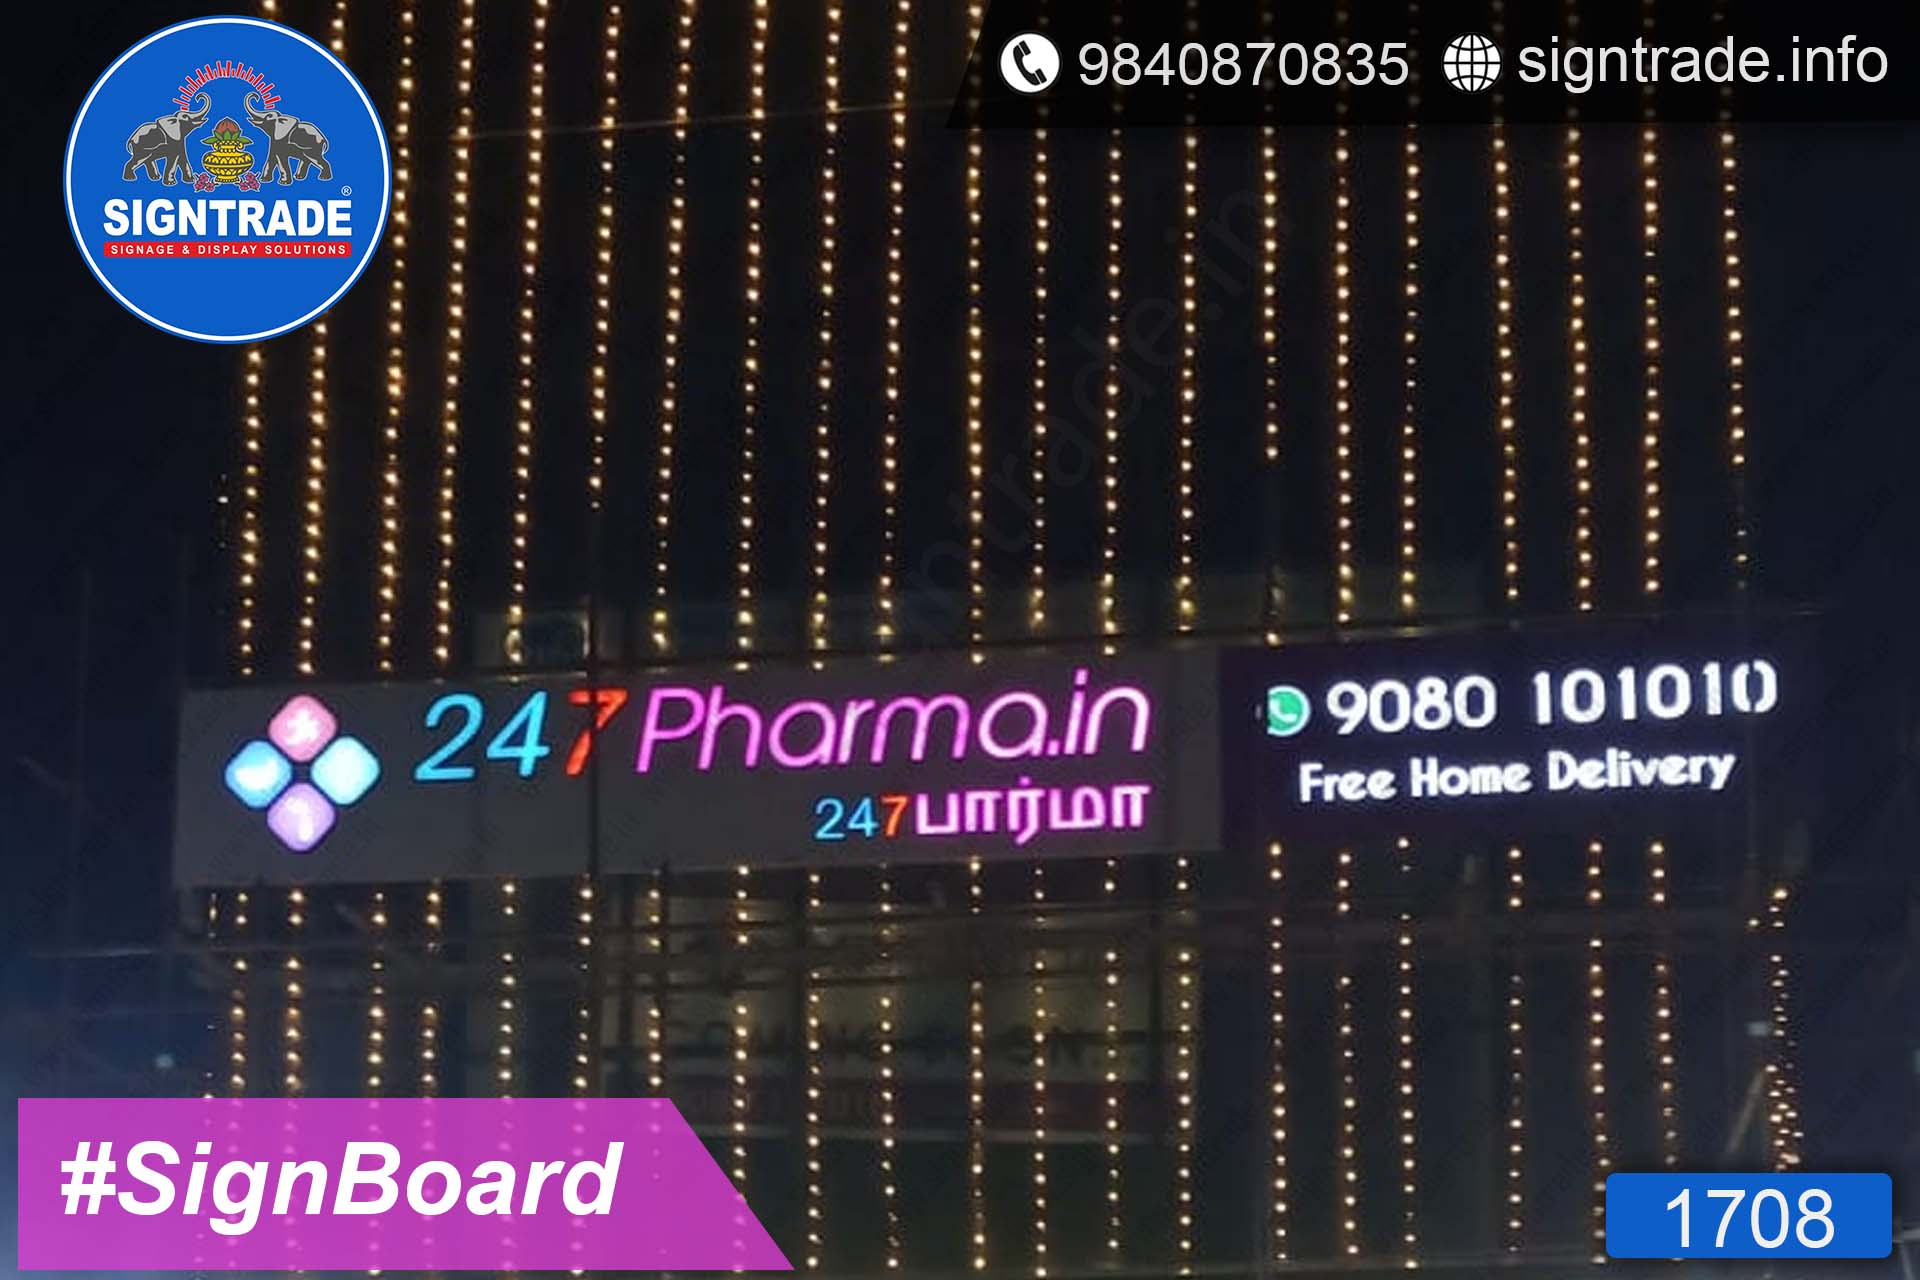 247pharma.in, Chennai - SIGNTRADE - Acrylic LED Sign Board Manufacturers in Chennai